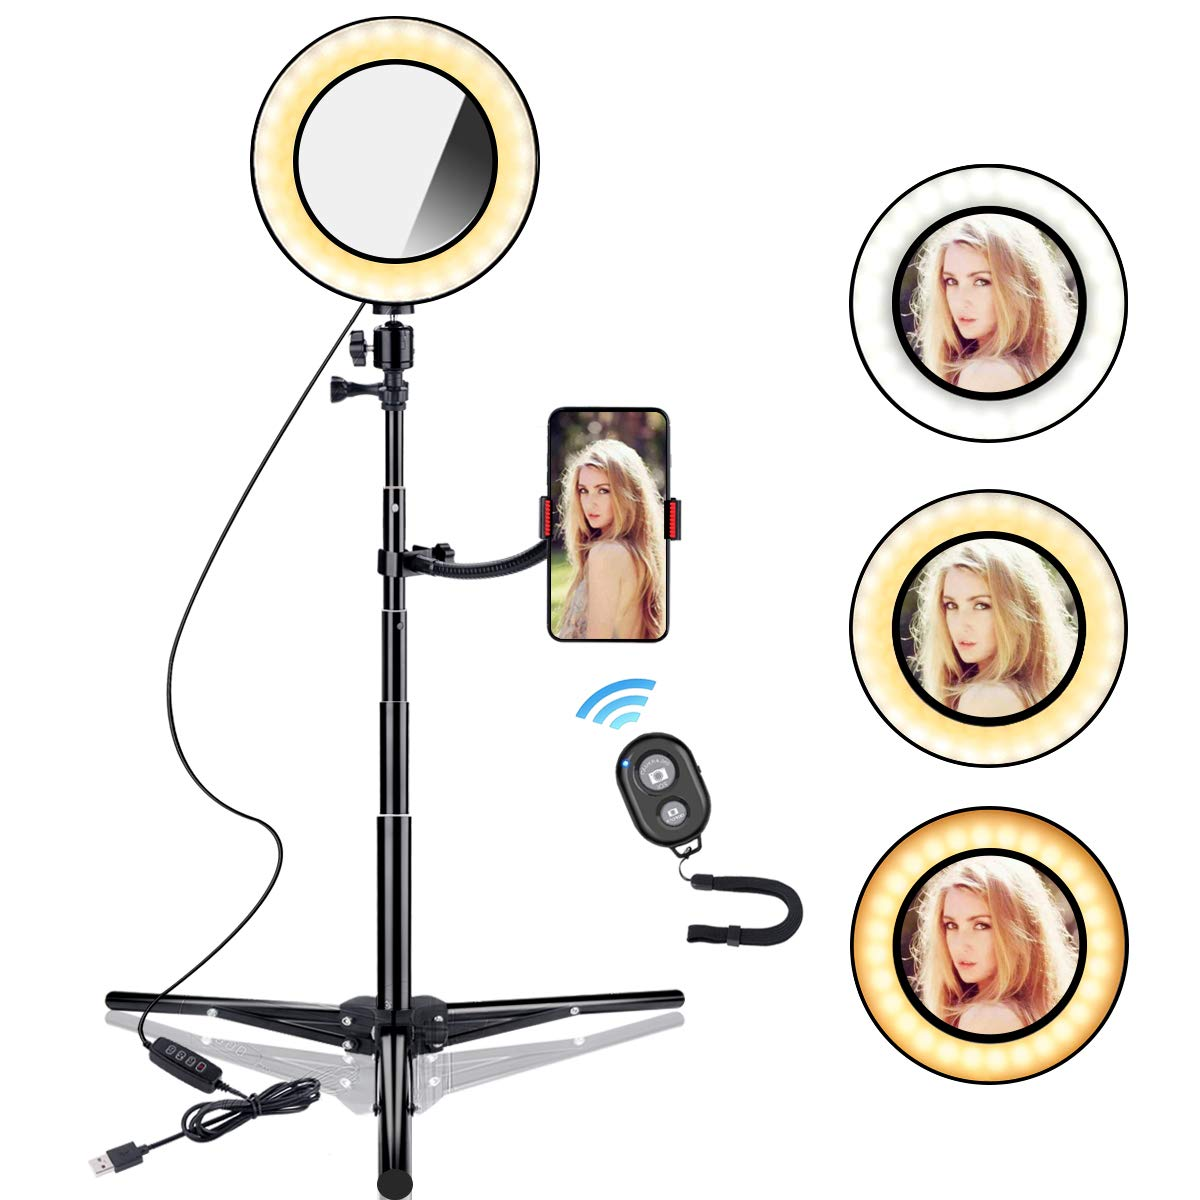 B-Land 6.2'' Ring Light with Tripod Stand & Phone Holder for YouTube Videos, LED Camera Selfie Light Ring with Remote, Vanity Makeup Lights with Mirror, 3 Modes & 10 Brightness